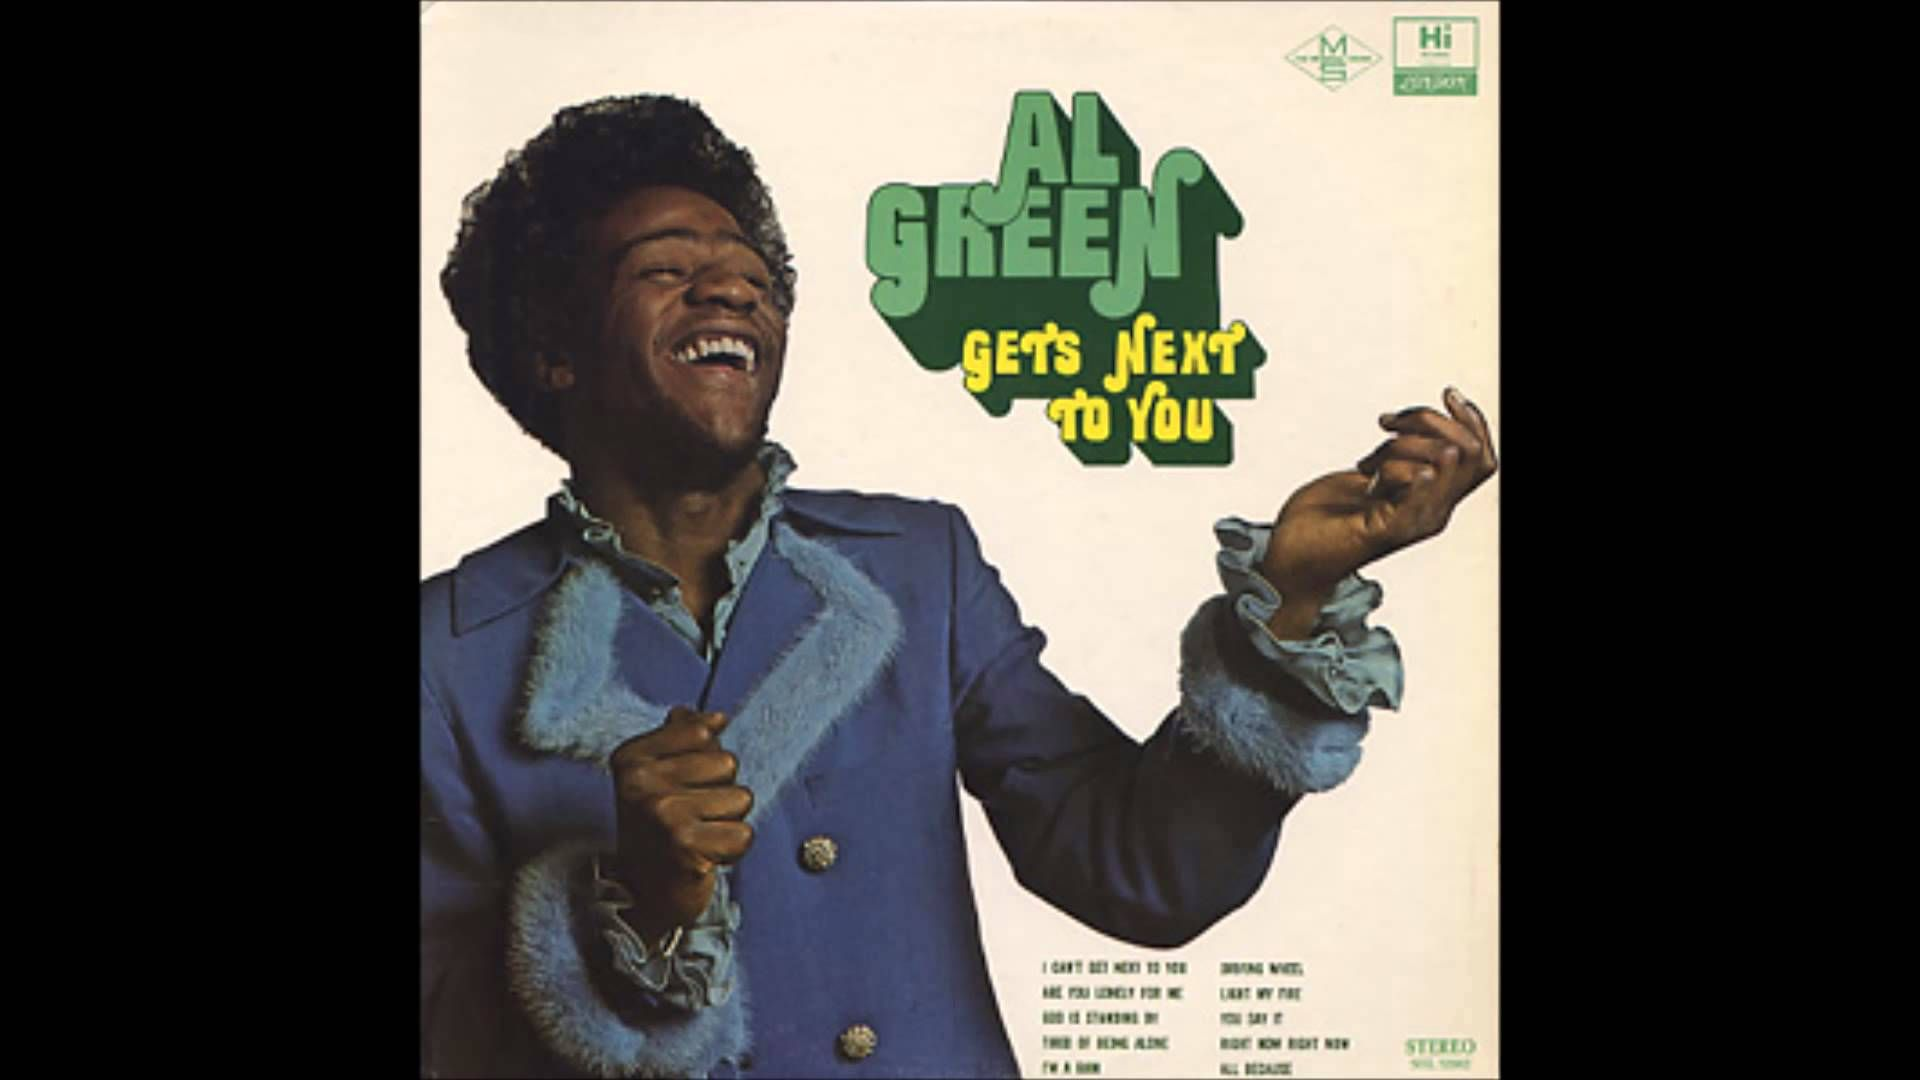 Al Green I Can T Get Next To You Al Green Tired Of Being